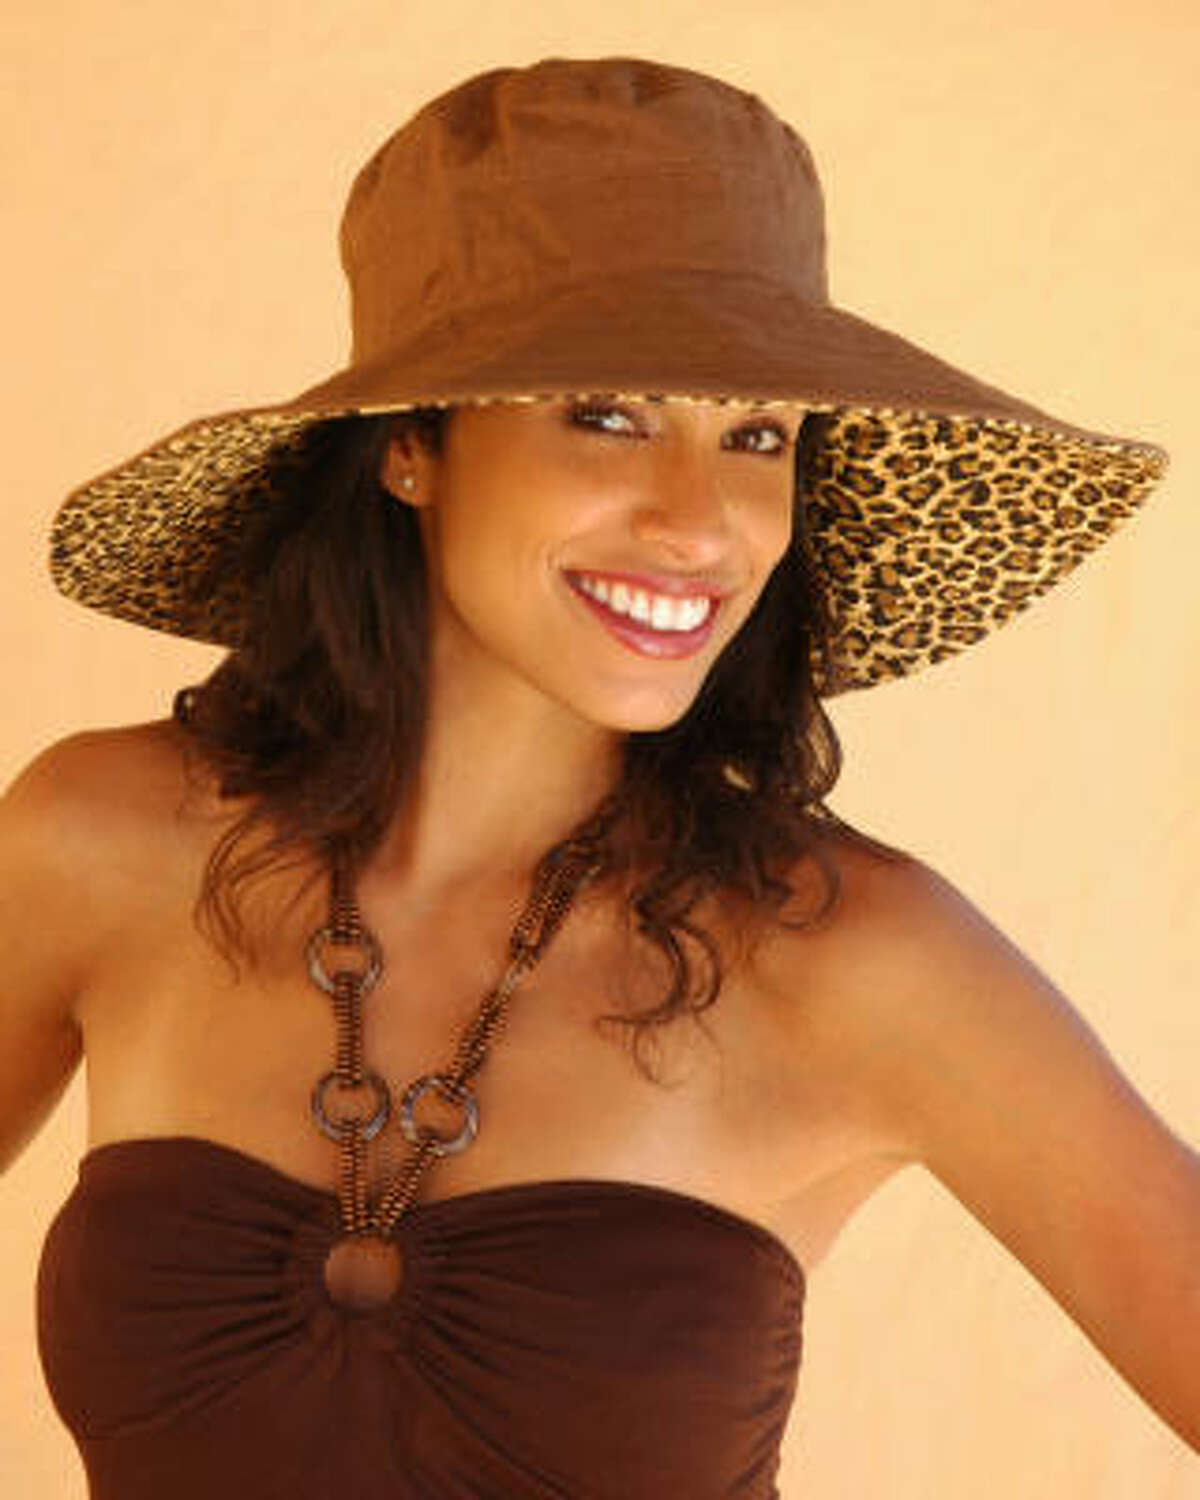 Physician Endorsed's Purr-fect sunhat, $60, is reversible. With UPF 50, it's designed to block 98 percent of the sun's damaging UV rays.